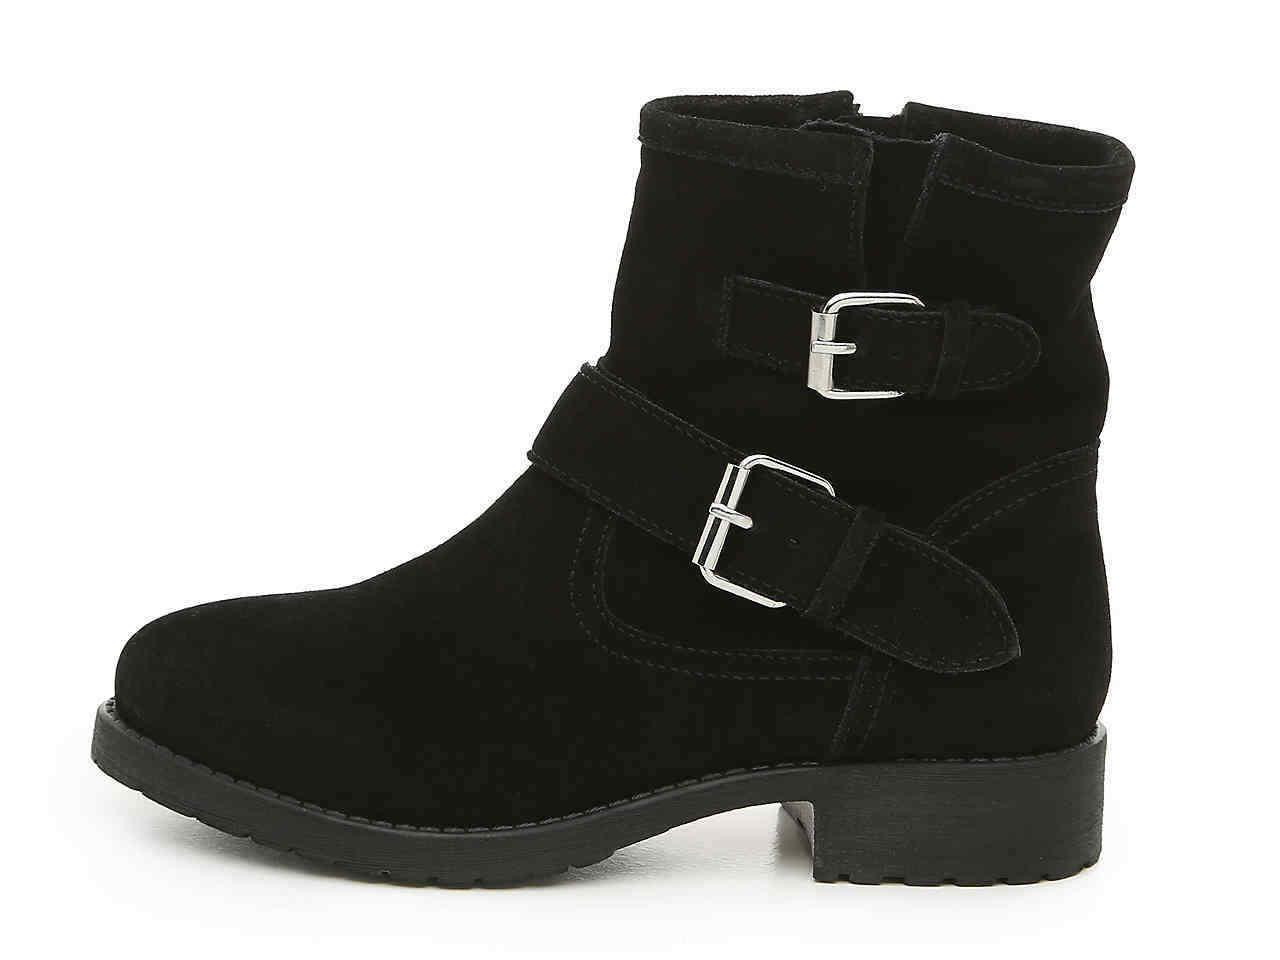 alick womens black suede high zip up